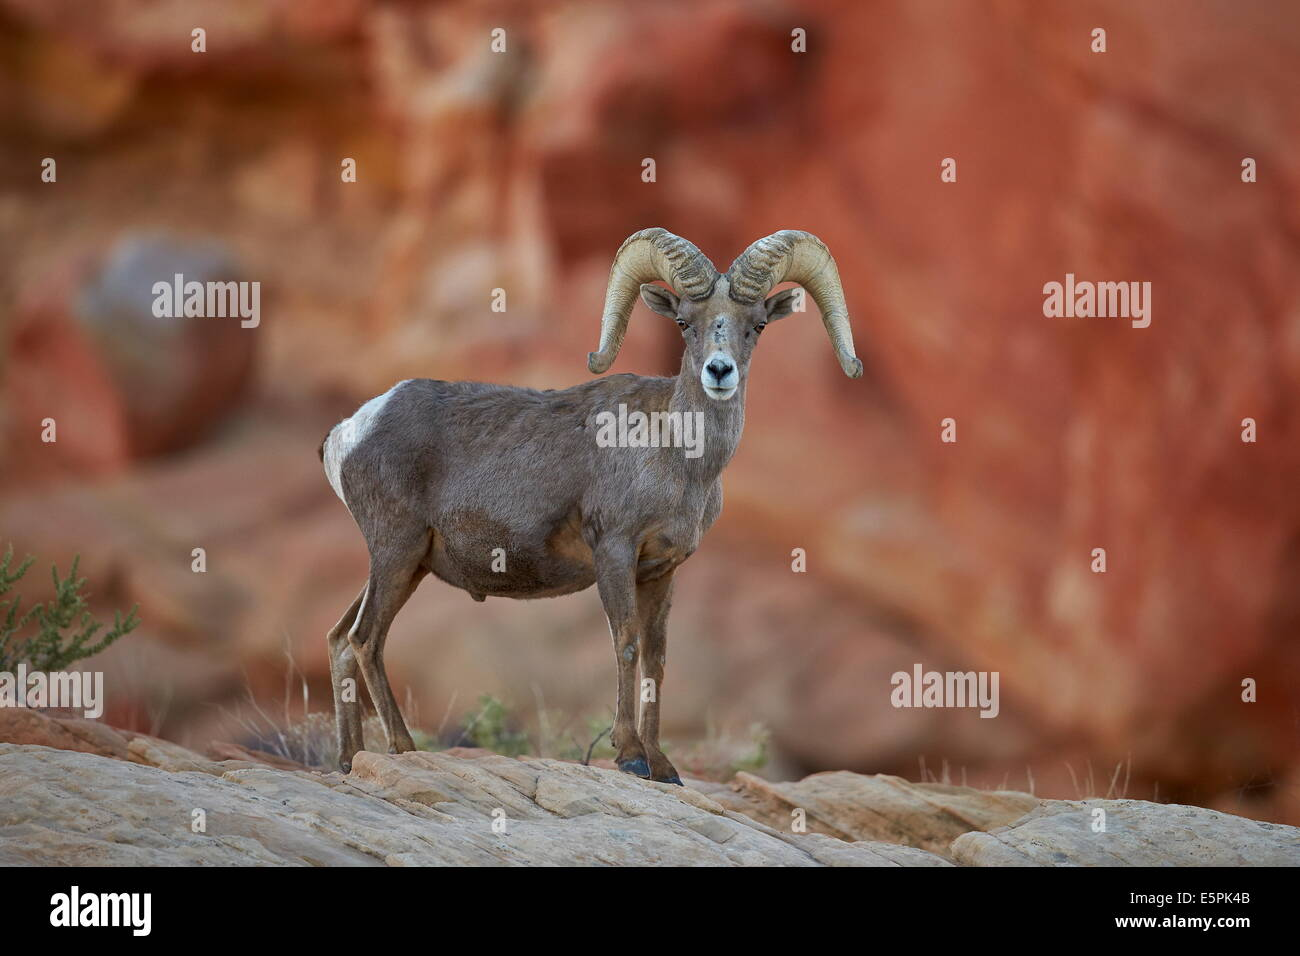 Nevada Desert Bighorn Sheep High Resolution Stock Photography And Images Alamy